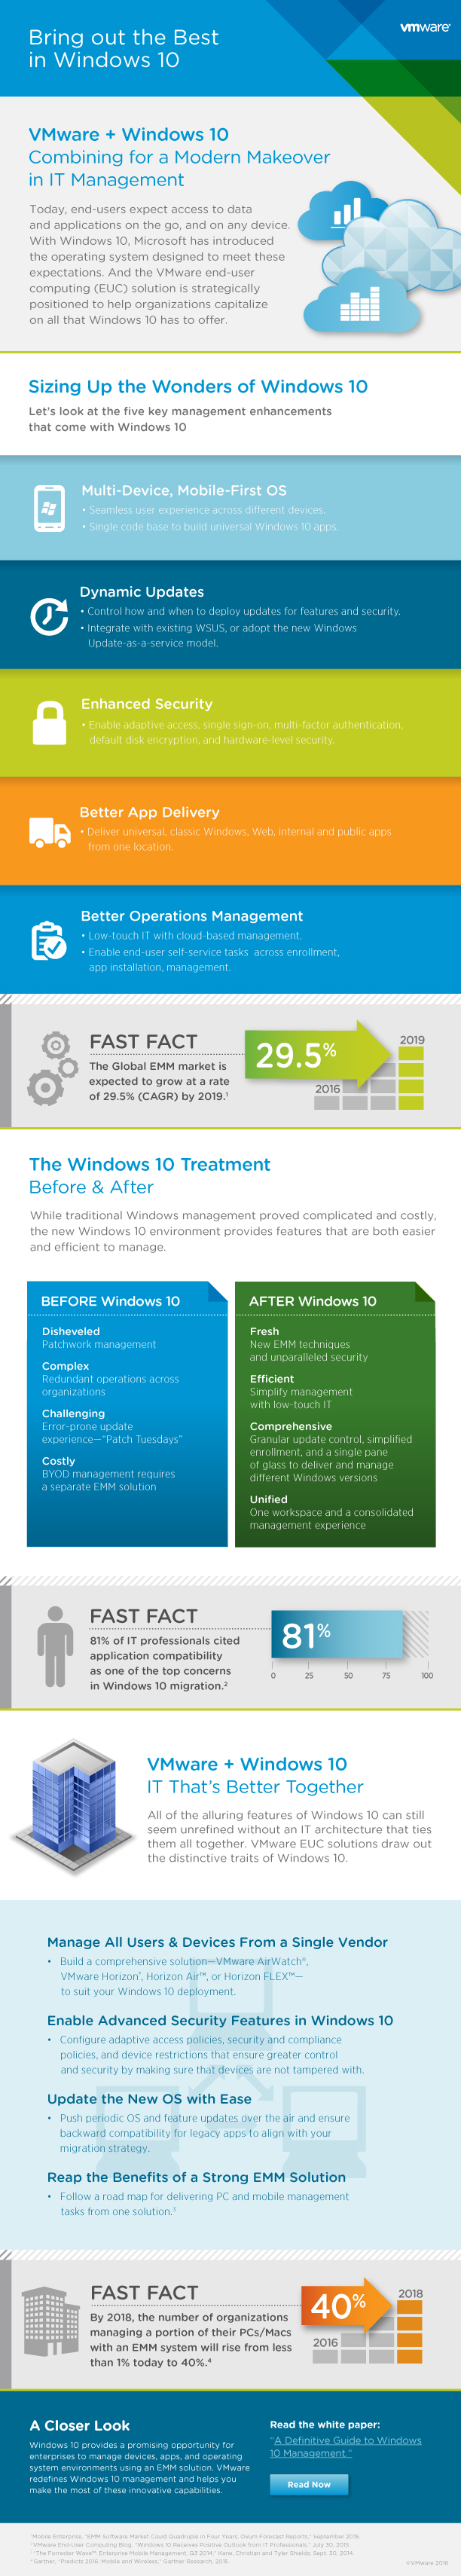 Infographic / VMware + Windows 10